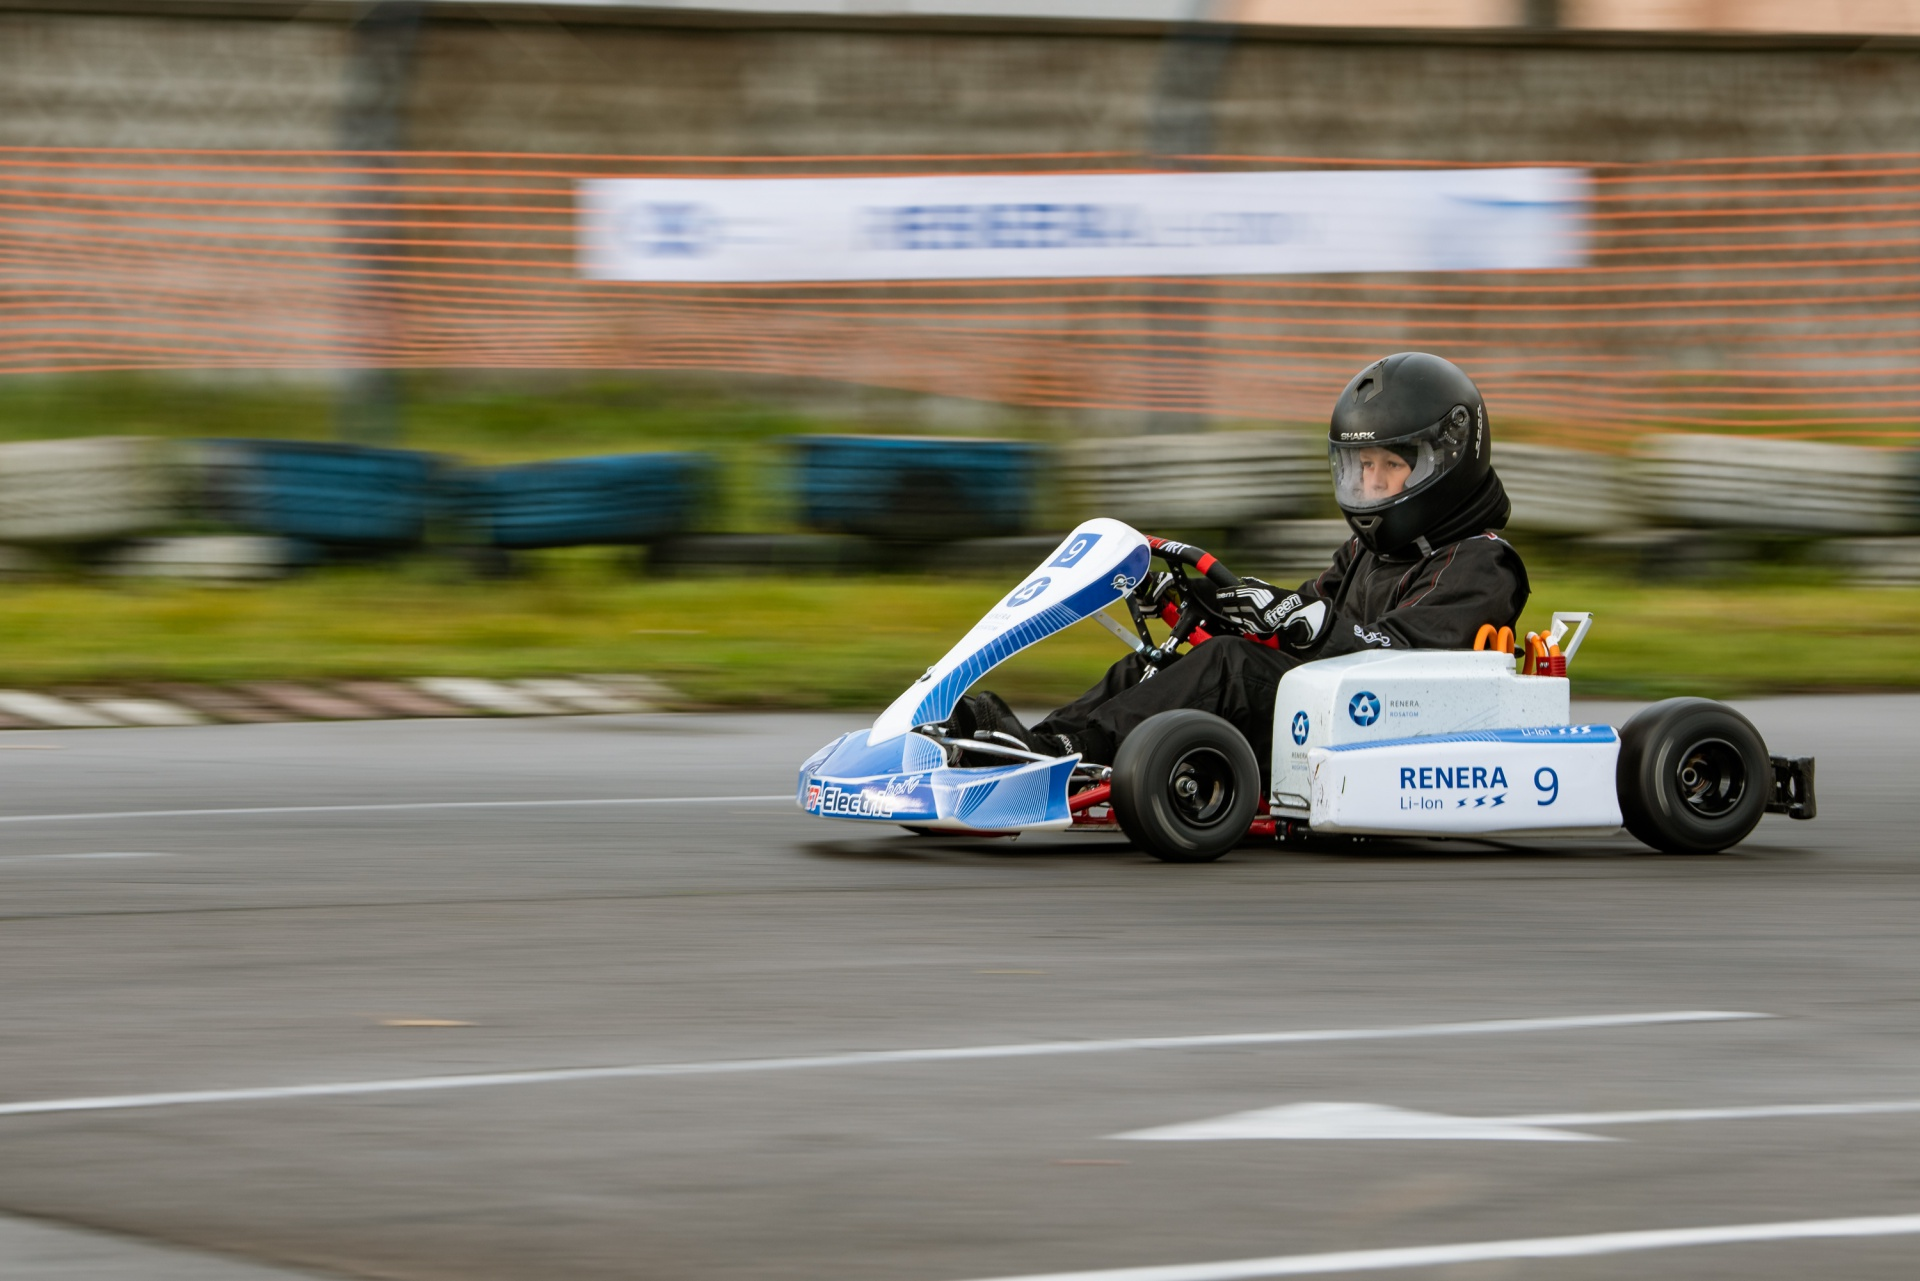 Rosatom equips cars with lithium-ion batteries for the first Russian electric kart race